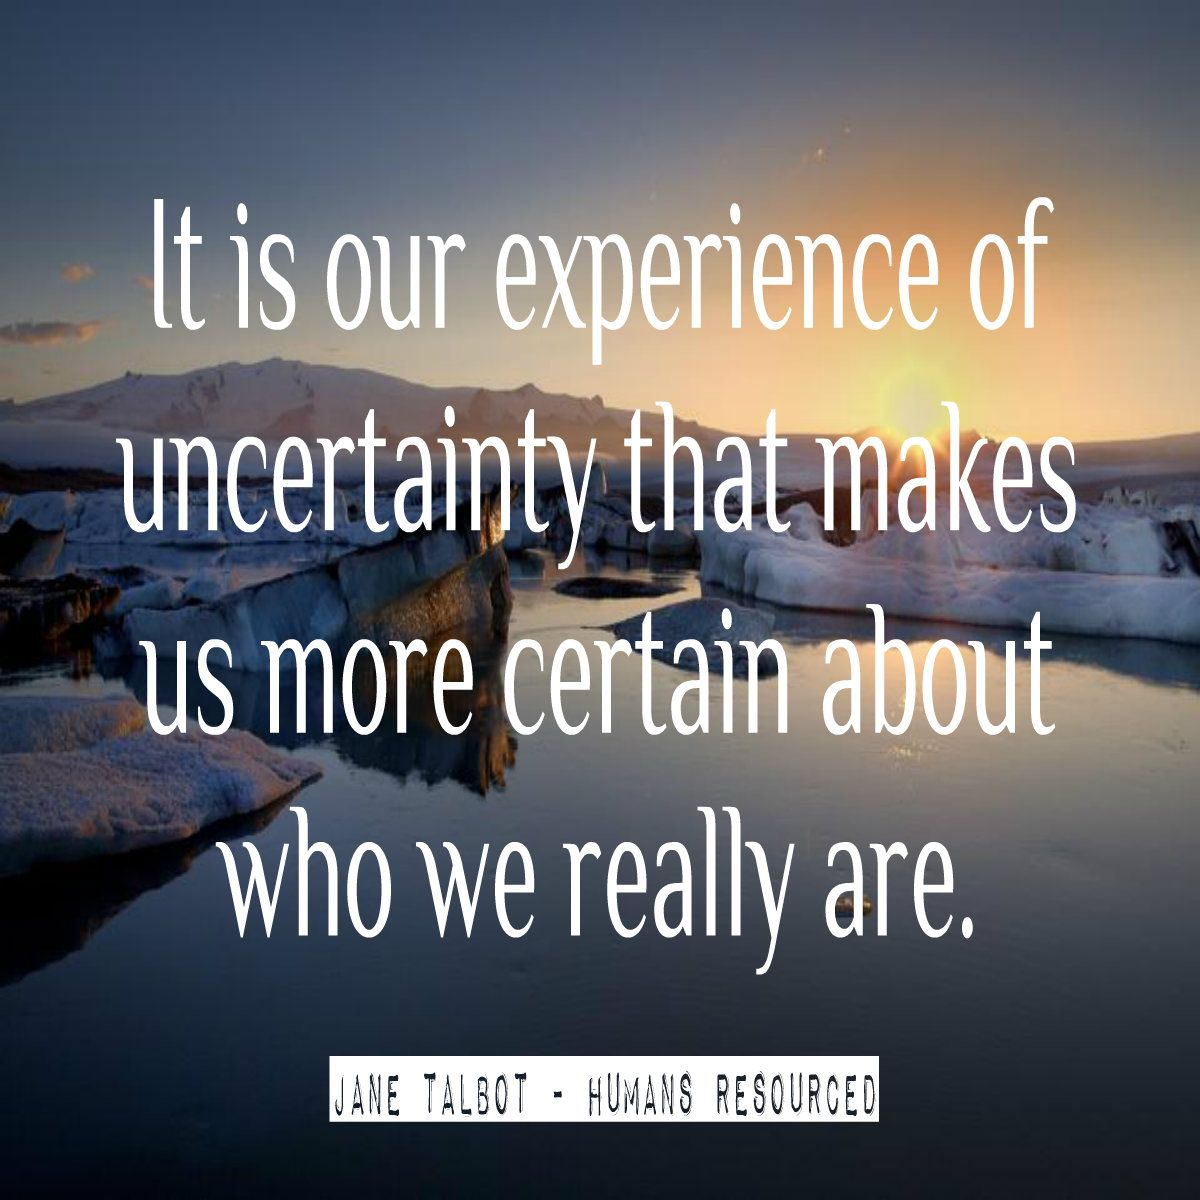 It is our experience of uncertainty that makes us more certain about who we really are ~ Jane Talbot #Adventure #GiftsOfAdventure www.janetalbot.com